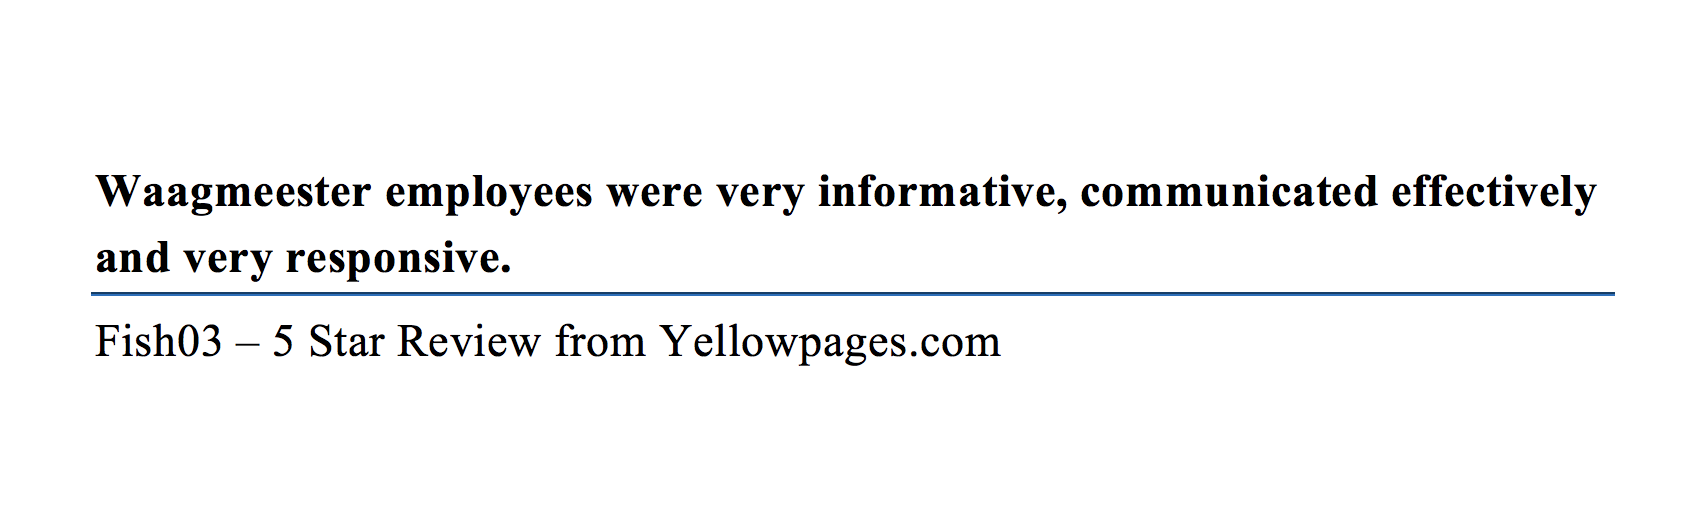 Yellow Pages 5 Star Review